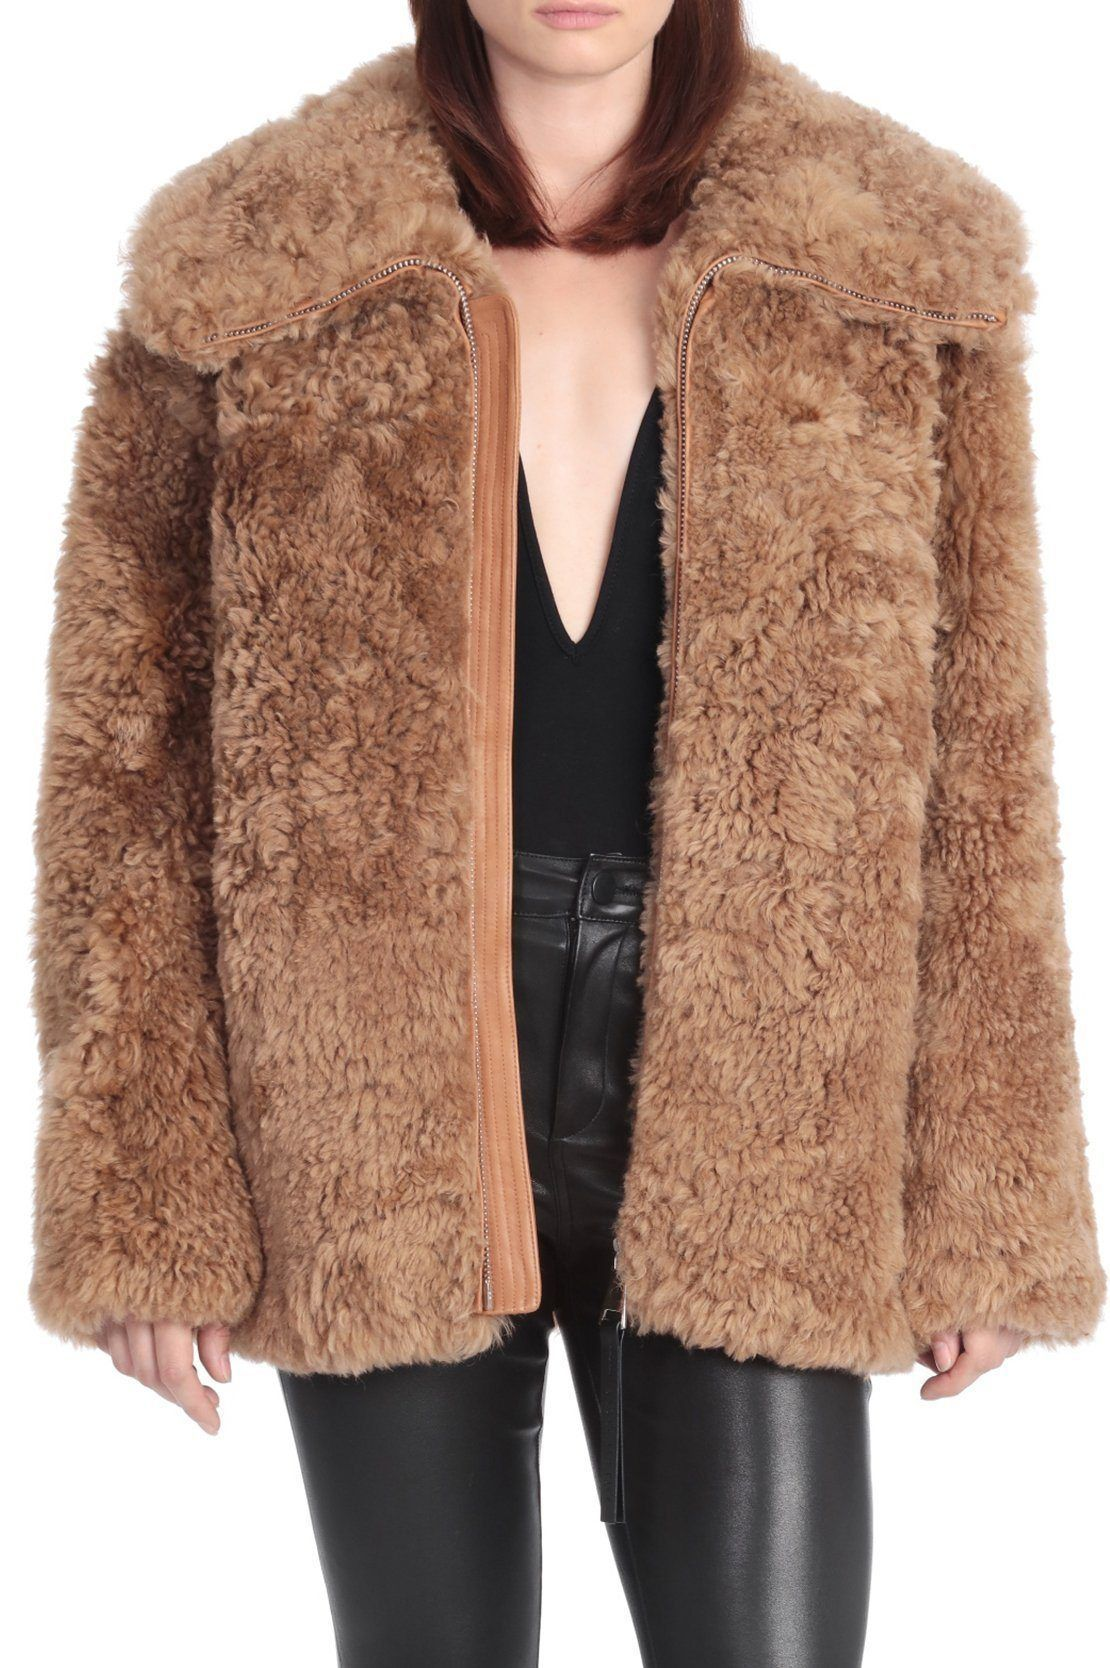 The Teddy Coat for $995.00 at BAGATELLE.CITY Shop Leather | Suede | Jackets